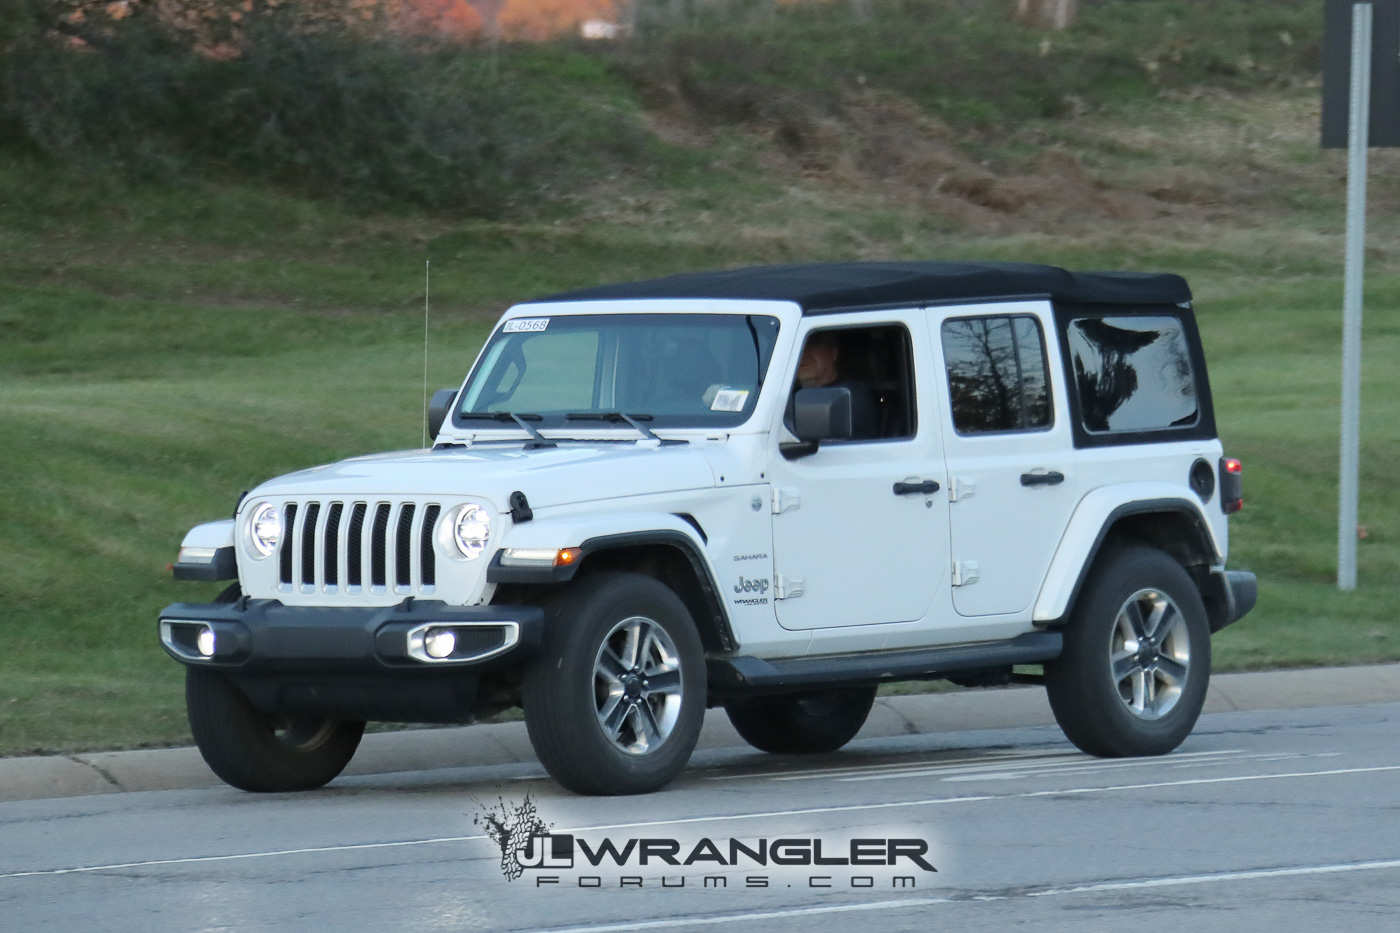 Jeep Wrangler 4 Door Soft Top >> Rubicon, Sahara, Sport and Overland JL Wranglers Spotted in Multiple Colors | 2018+ Jeep ...